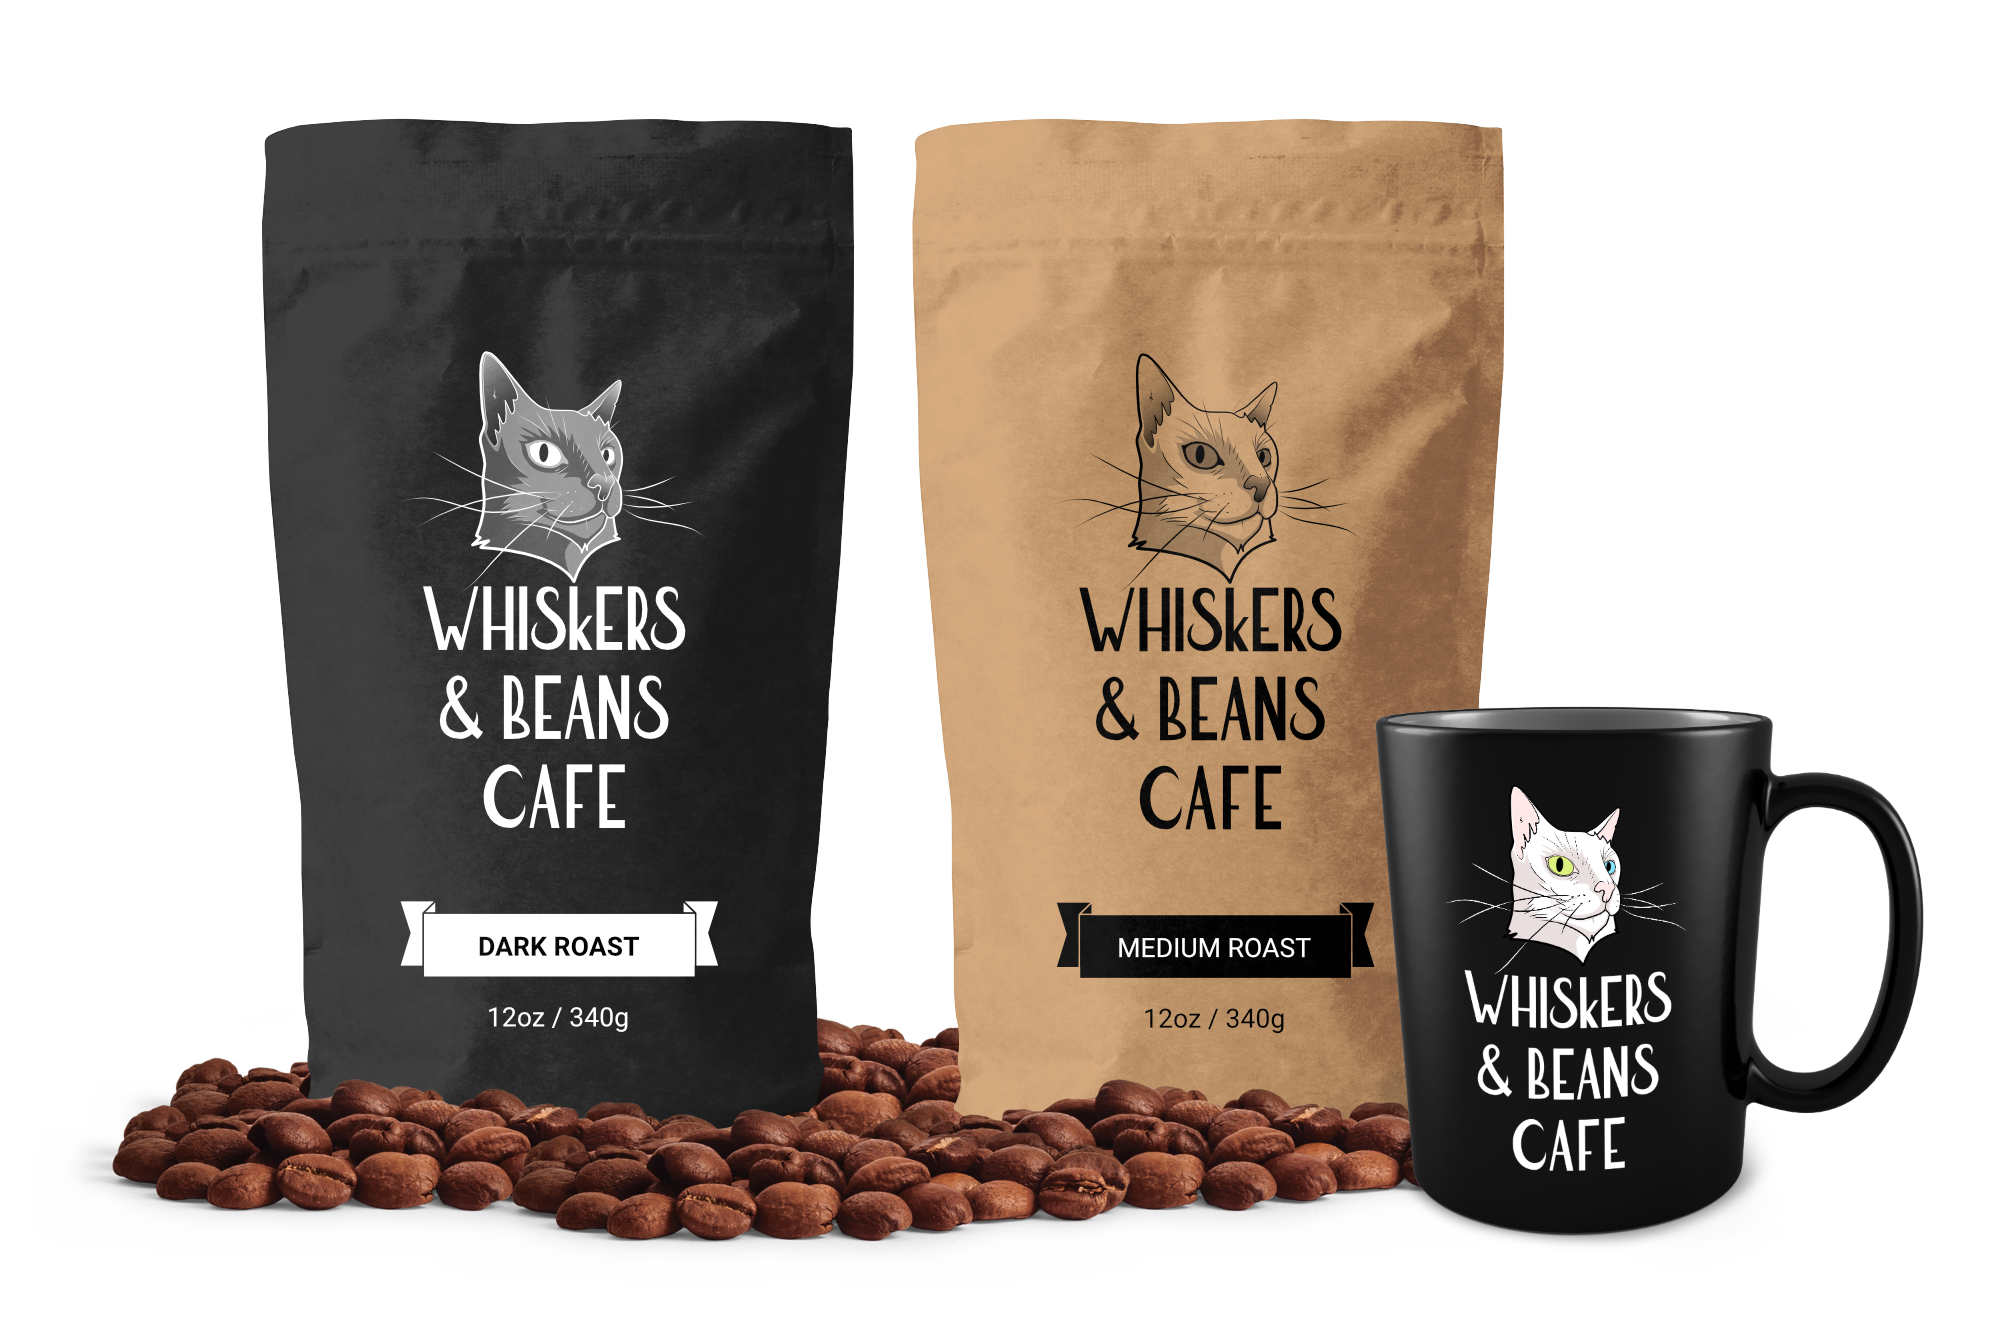 Whiskers & Beans Cafe